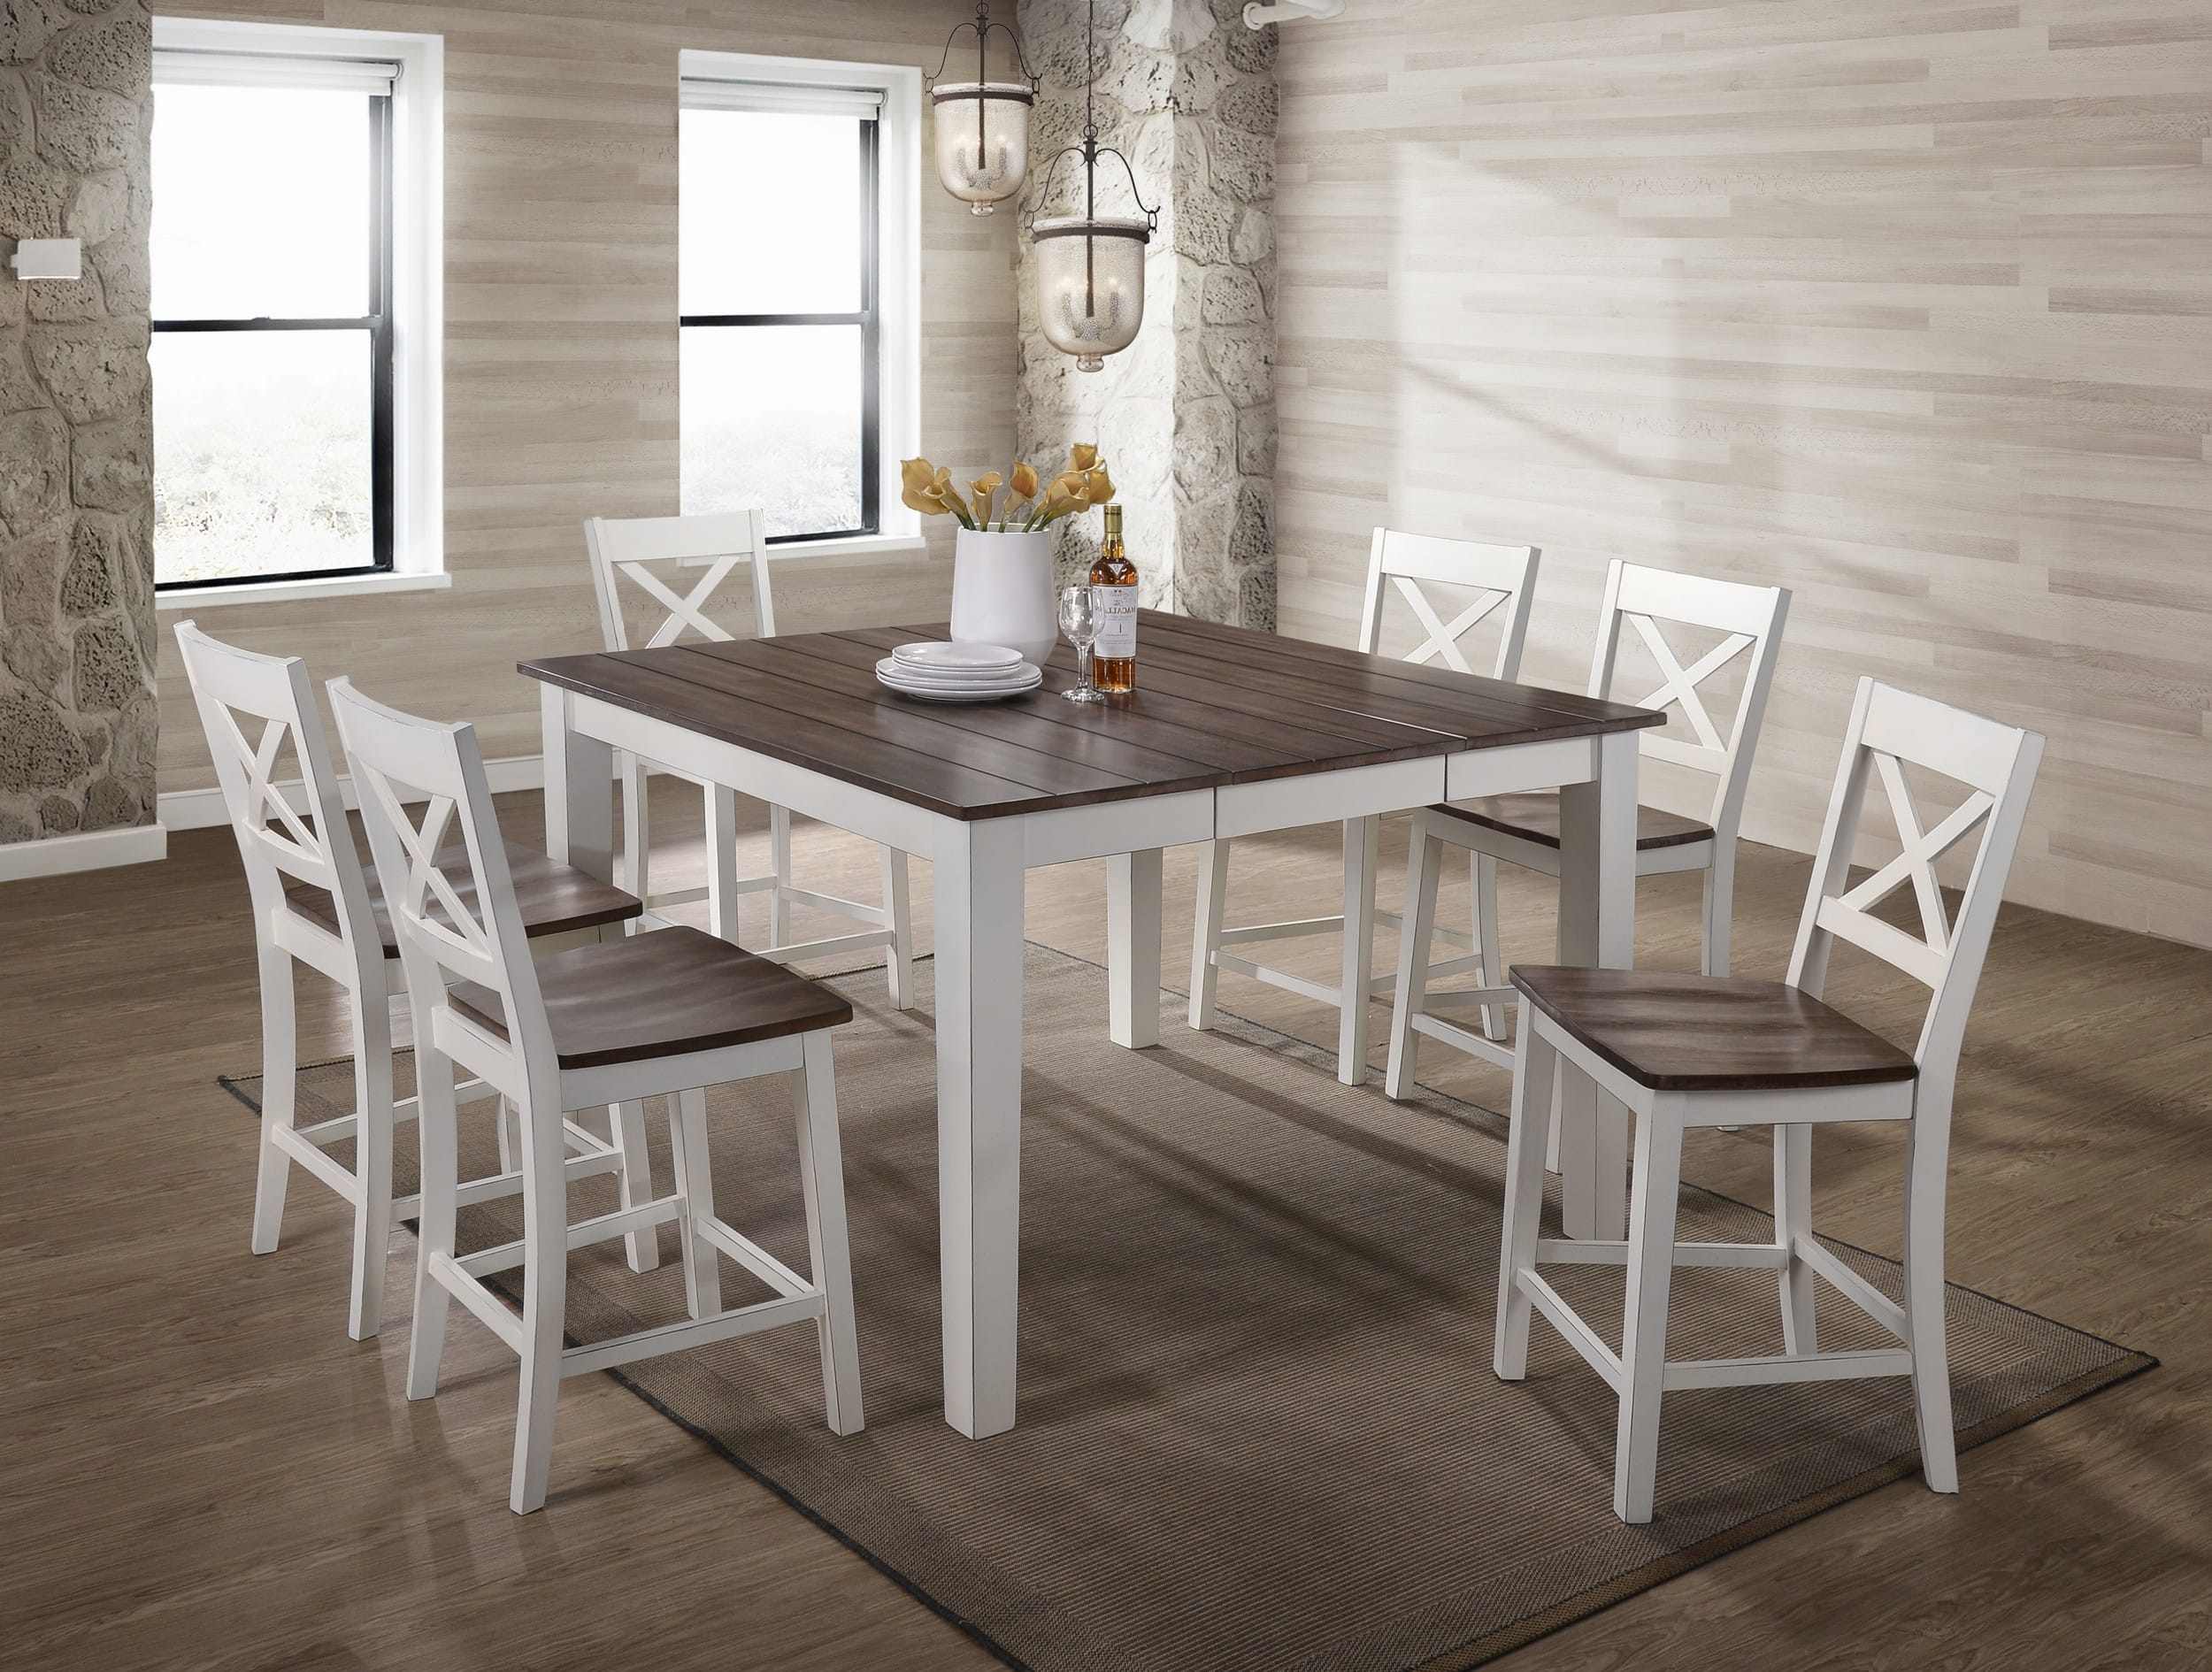 Simmons Upholstery A La Carte White Counter Height 7 Piece Dining